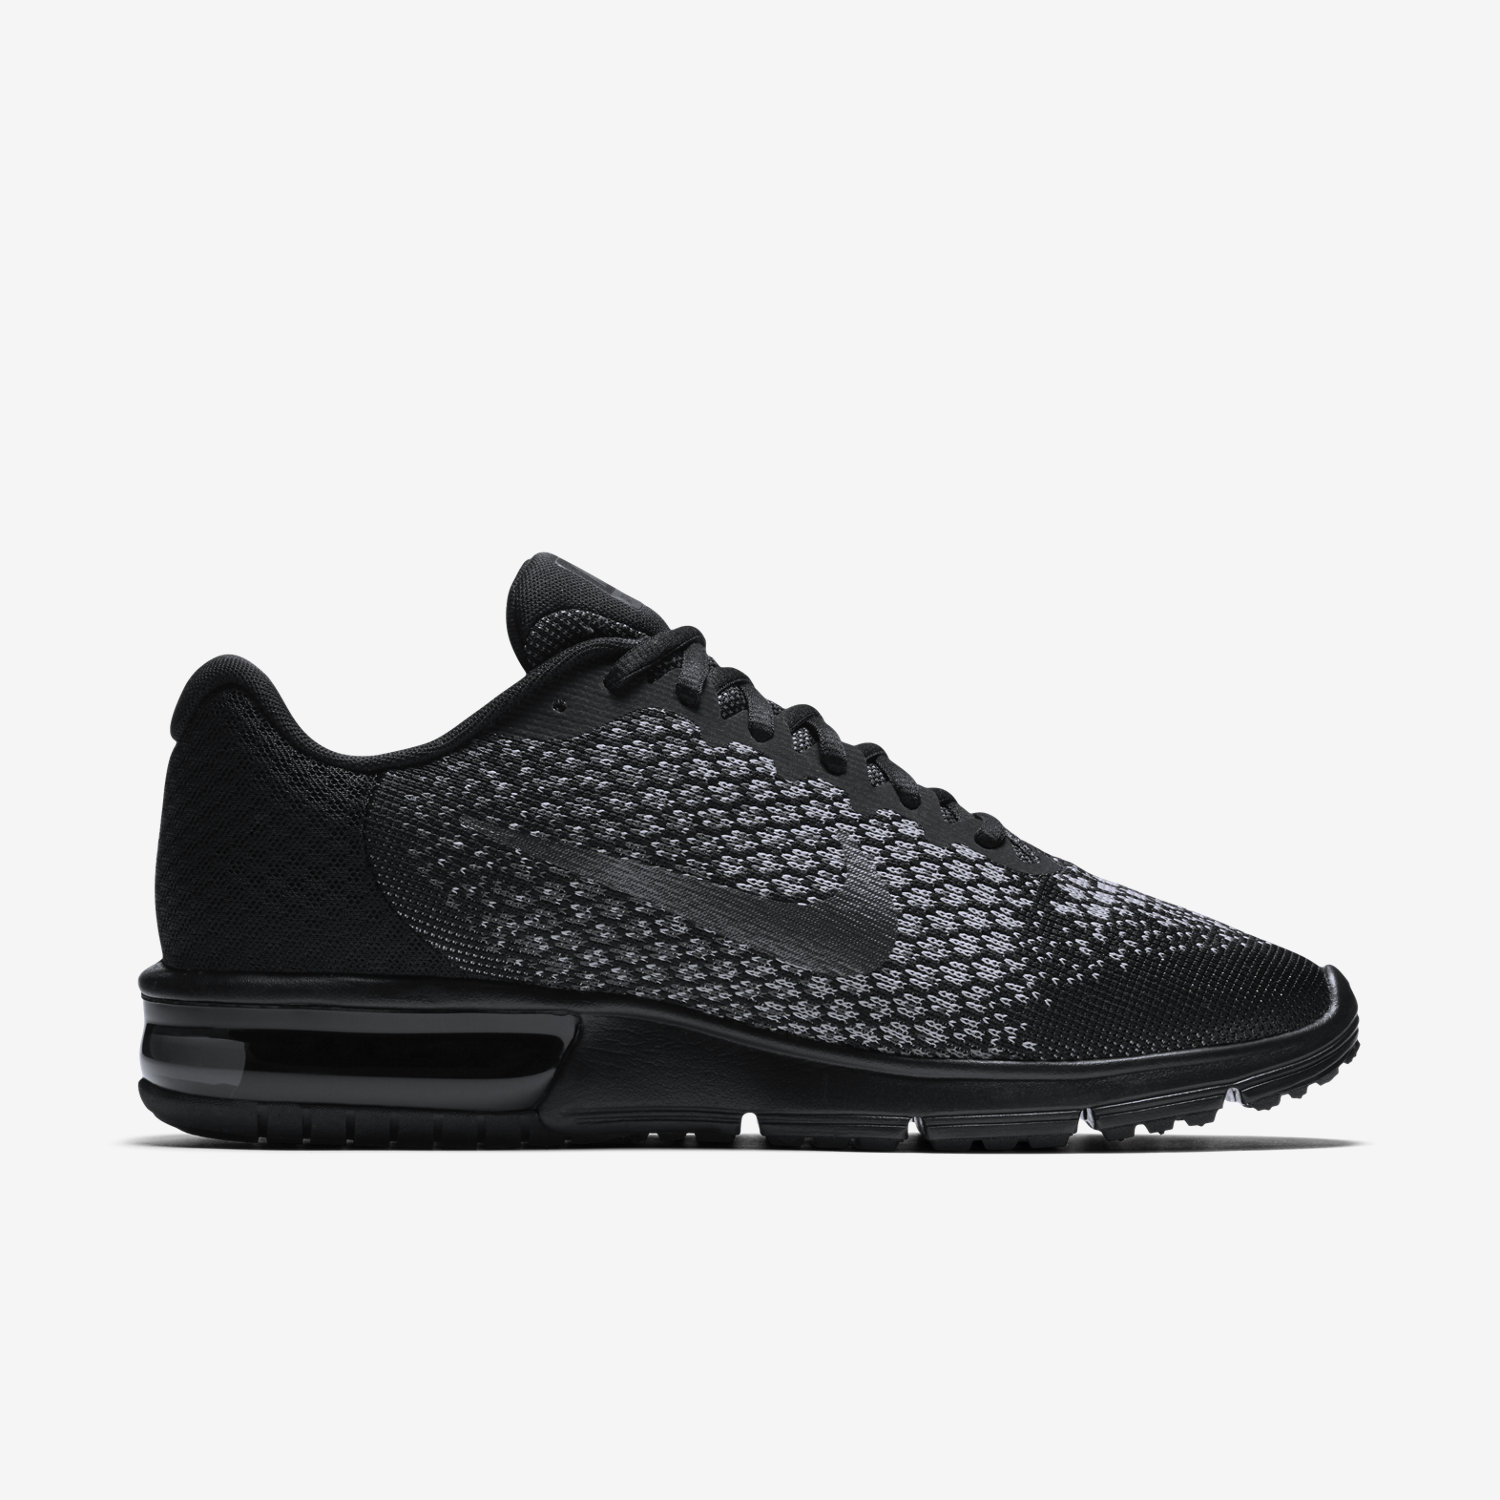 nike chaussures running air max sequent homme,nike